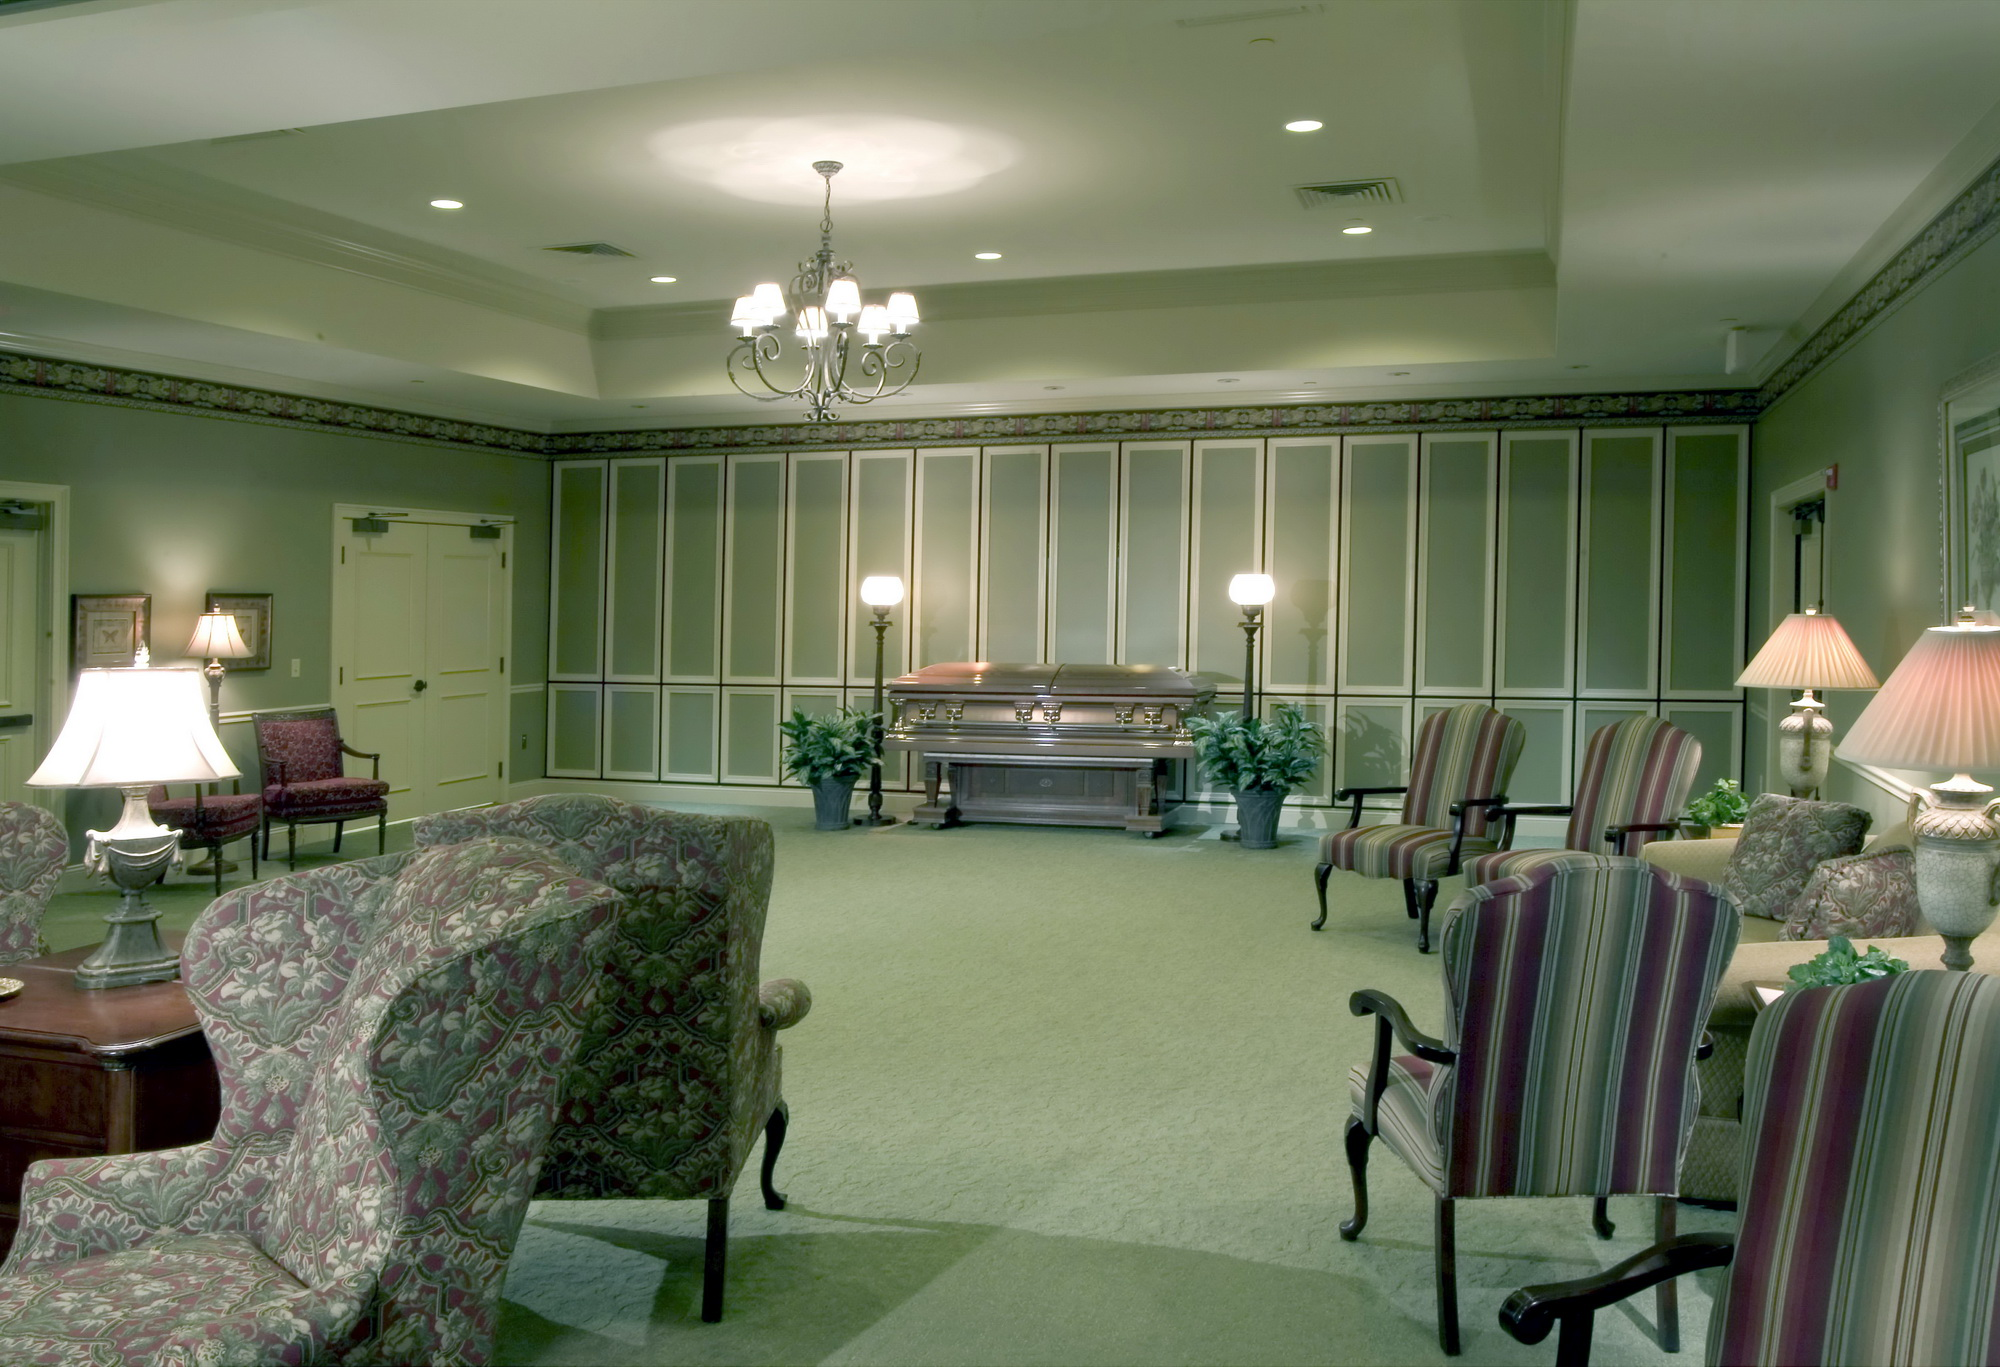 Funeral home interior design 28 images interior design behrens design development walker - Funeral home interior design ...